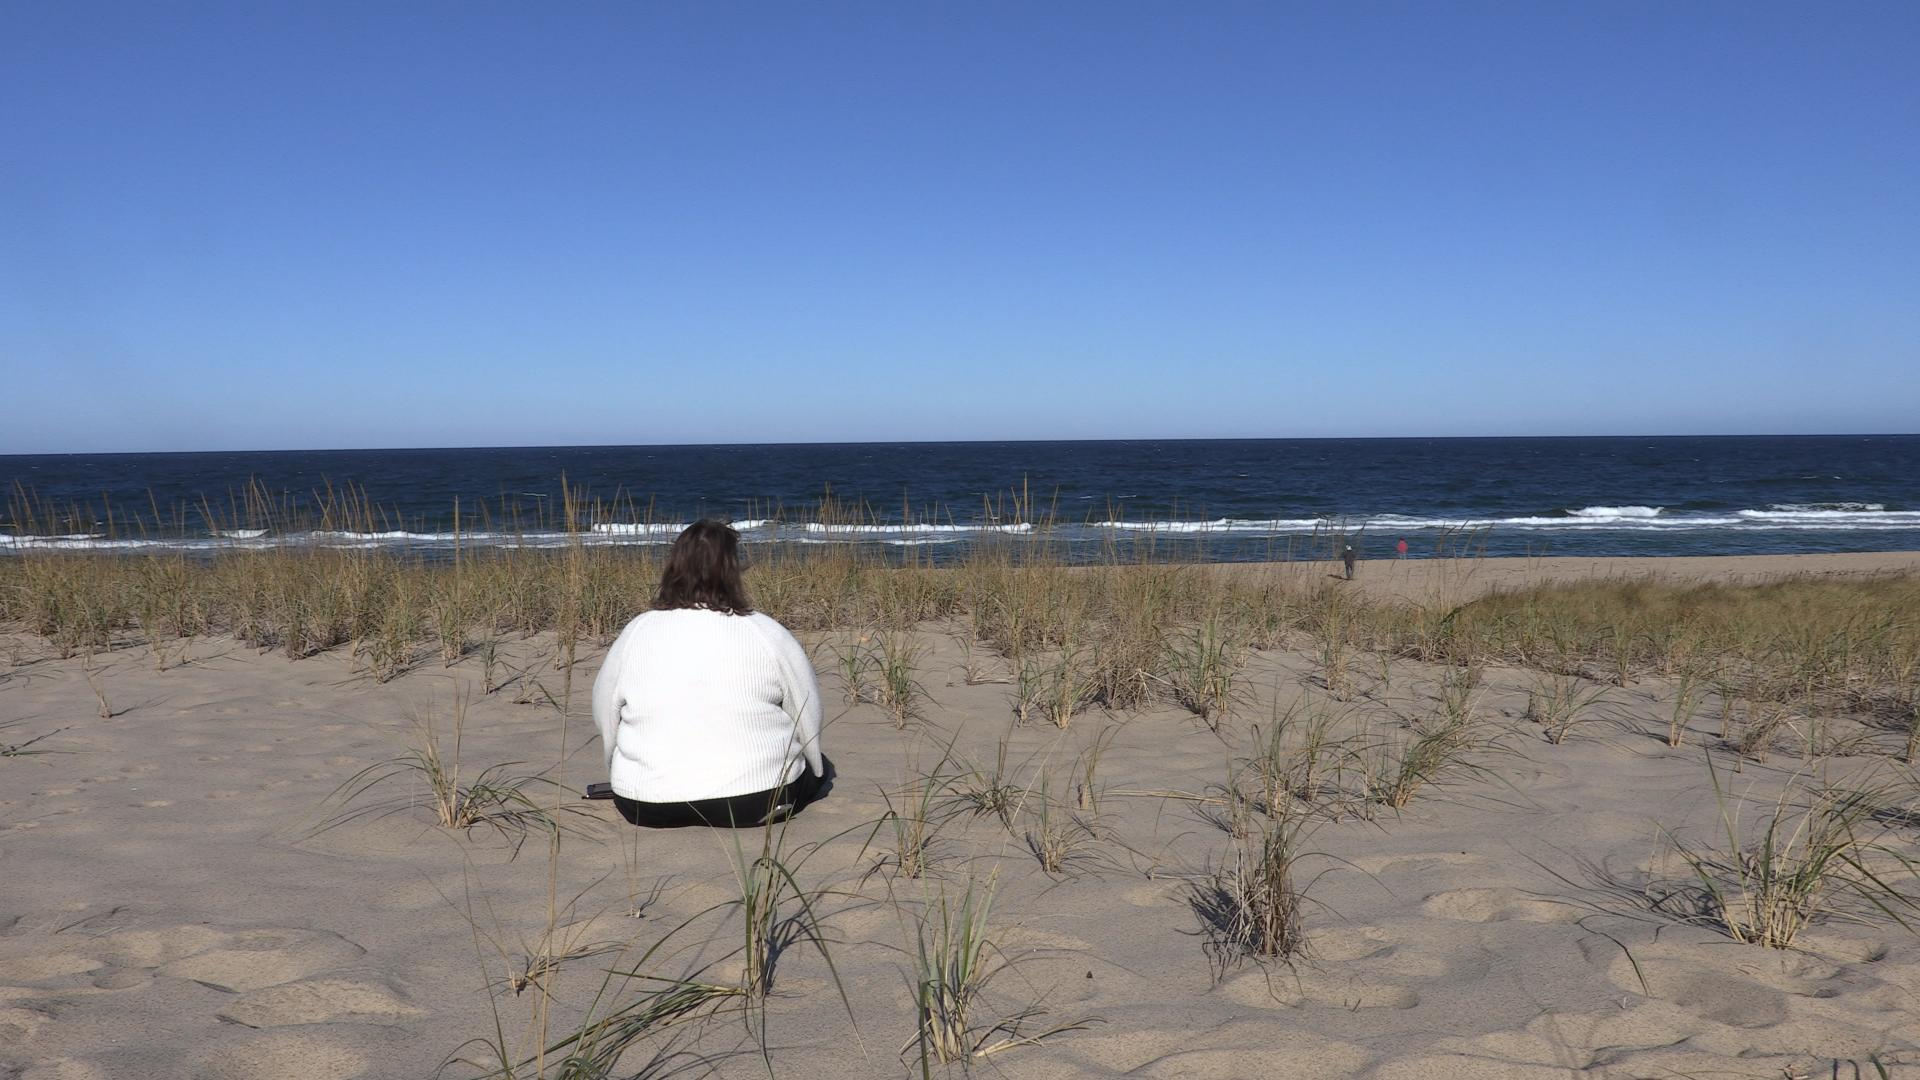 A middle aged woman sitting on a sandy beach with her back to the camera on a sunny day. She appears to be looking at the ocean in front of her.